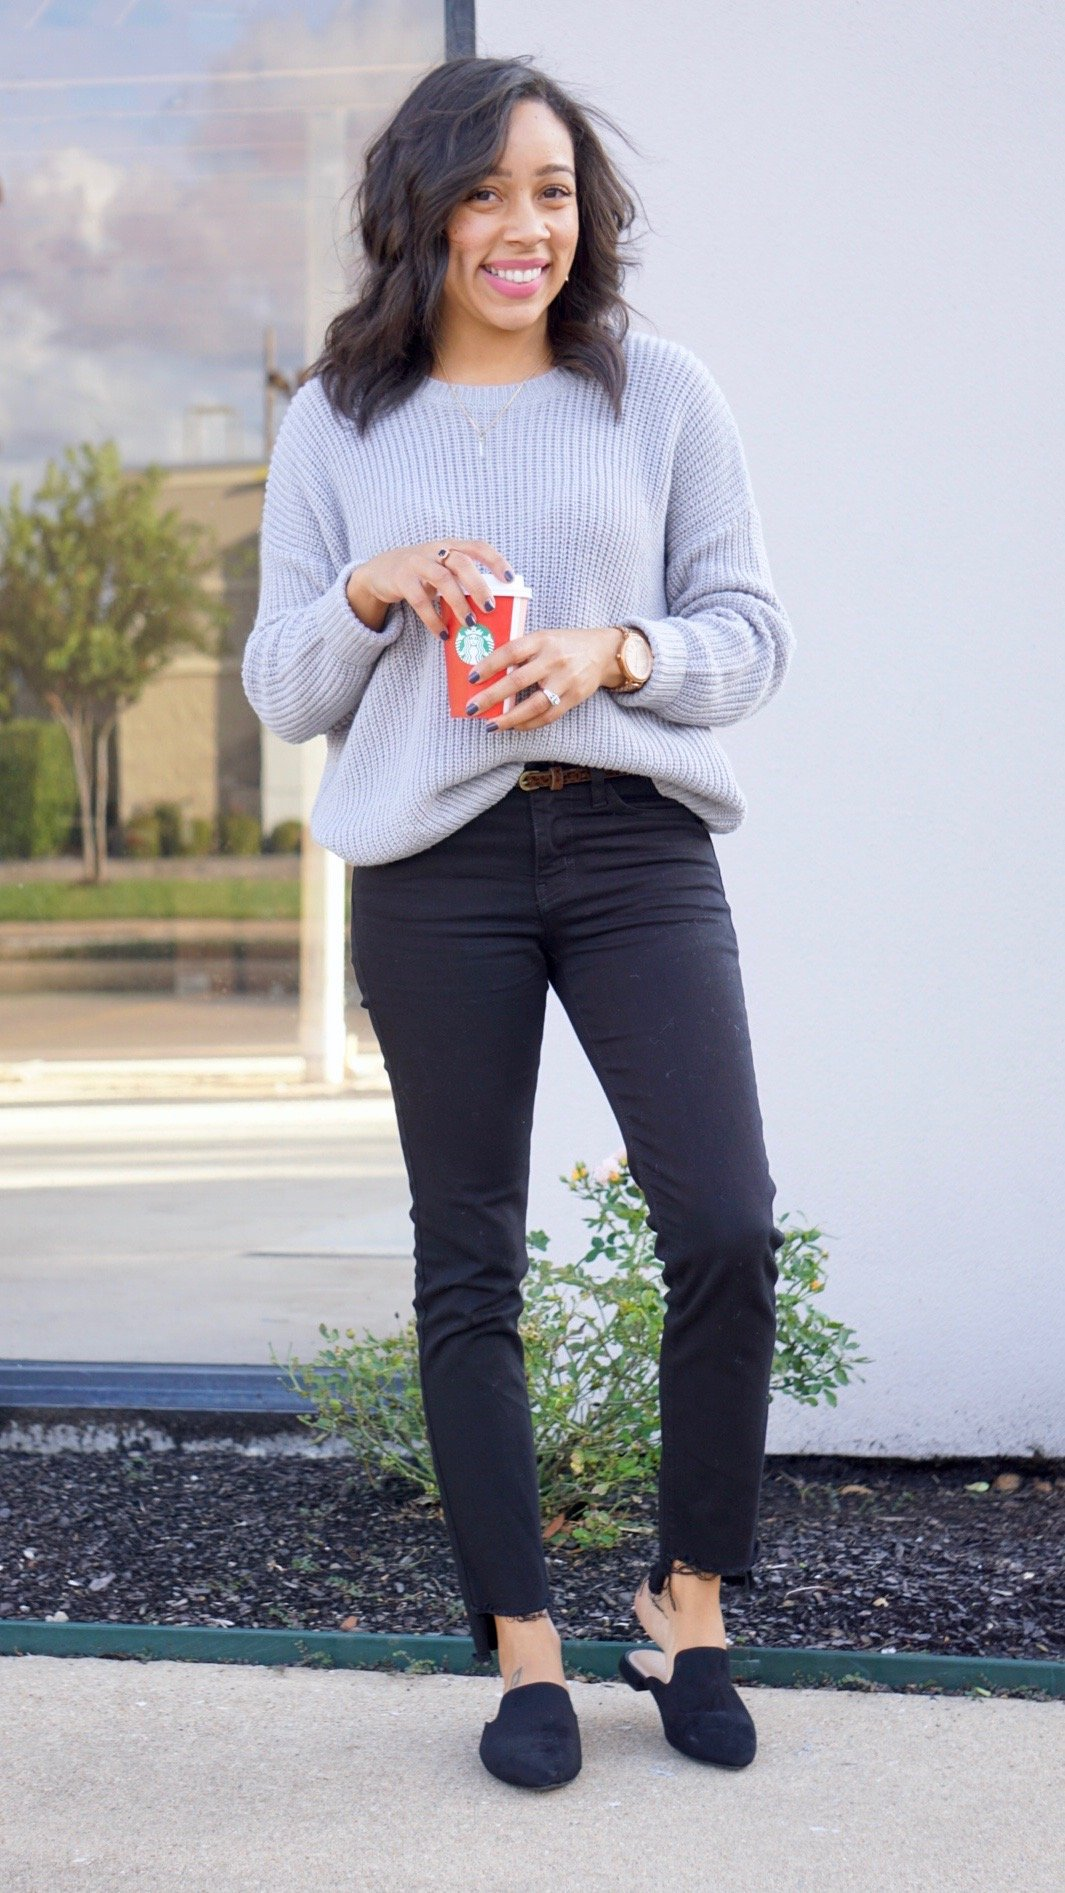 Forever 21 sweater, Forever21, Forever 21, Trendy Thursday LinkUp, Trendy Thursday, grey, LinkUp Party, Fall Fashion, Fall Style, Fall Color, Color Trend Alert, Fall Colors, long sleeve, ribbed sweater, bodysuit outfit, sweater fall, forever21 outfits, forever21 tops, forever21 fall, forever21 store, forever21 clothes, forever21 vestidos, forever21